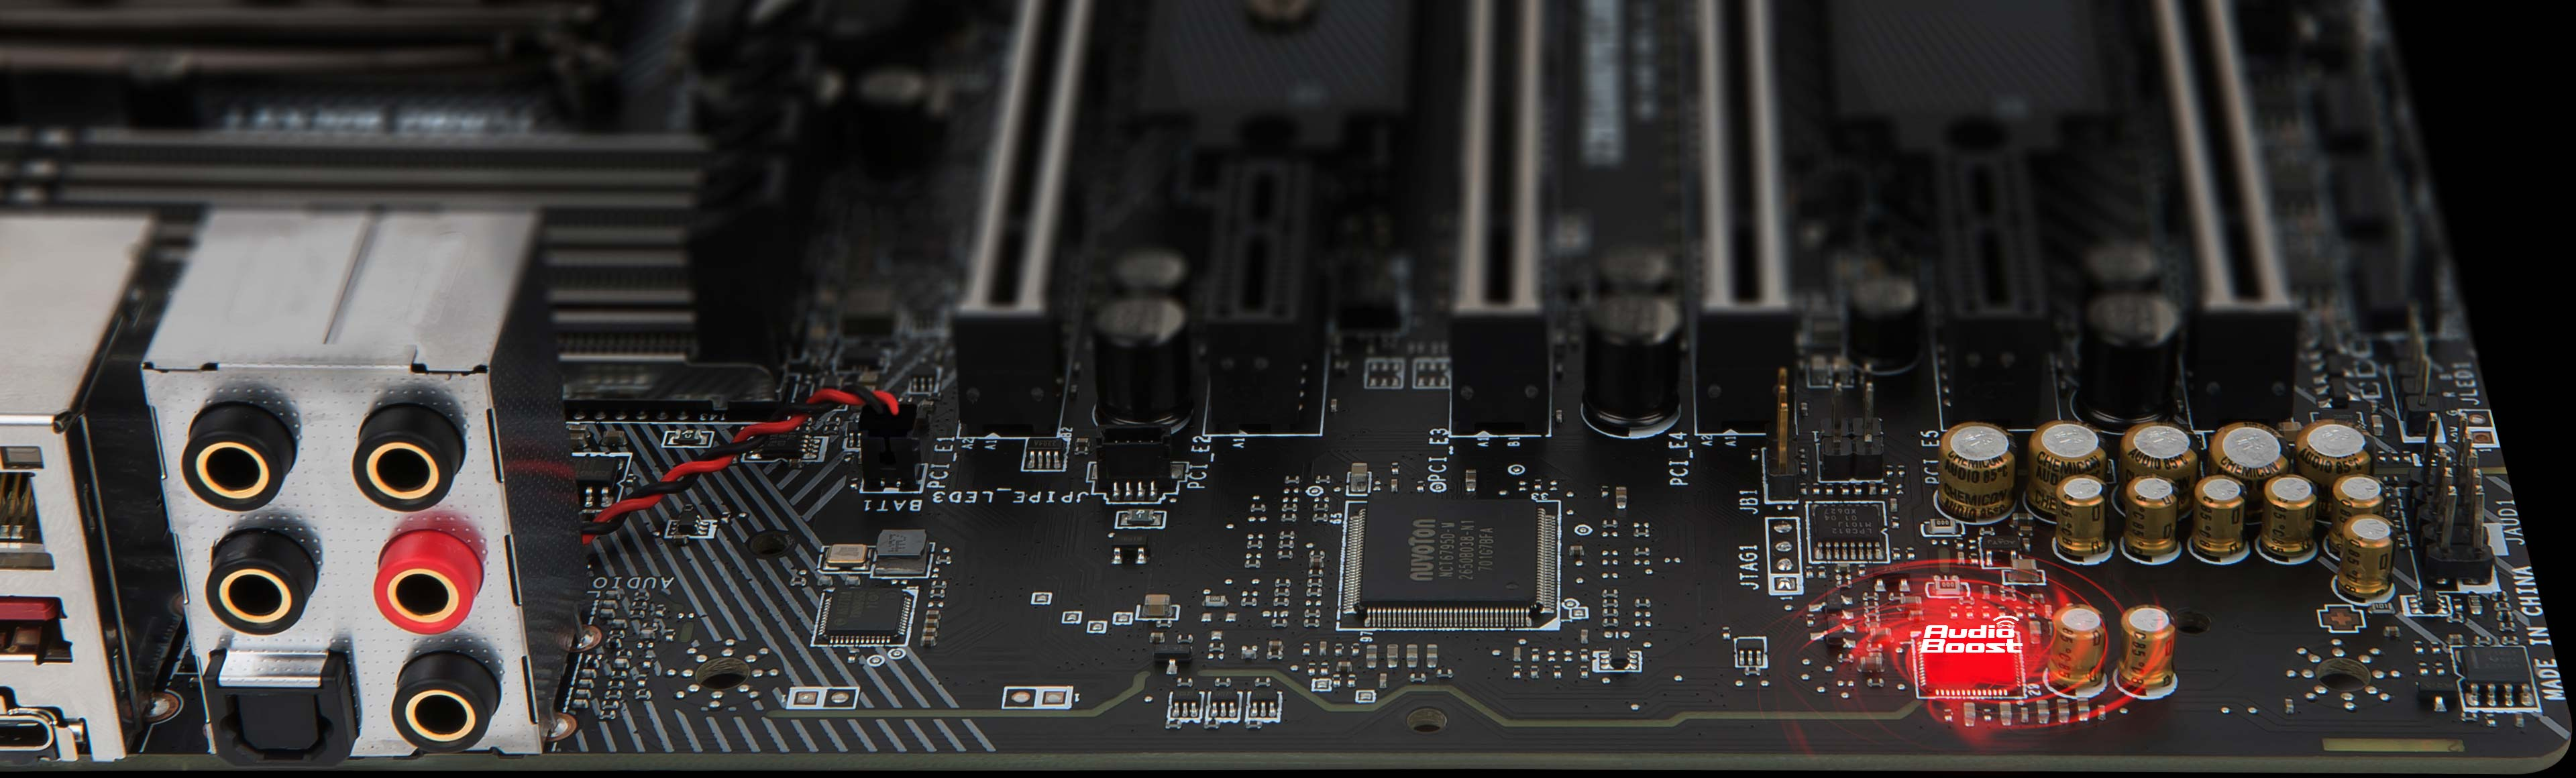 For Pc Case Lighting Custom Msi X299 Gaming Pro Carbon Ac Channel Visions Universal Printed Circuit Board Mounting Plate Is A Motherboard Global